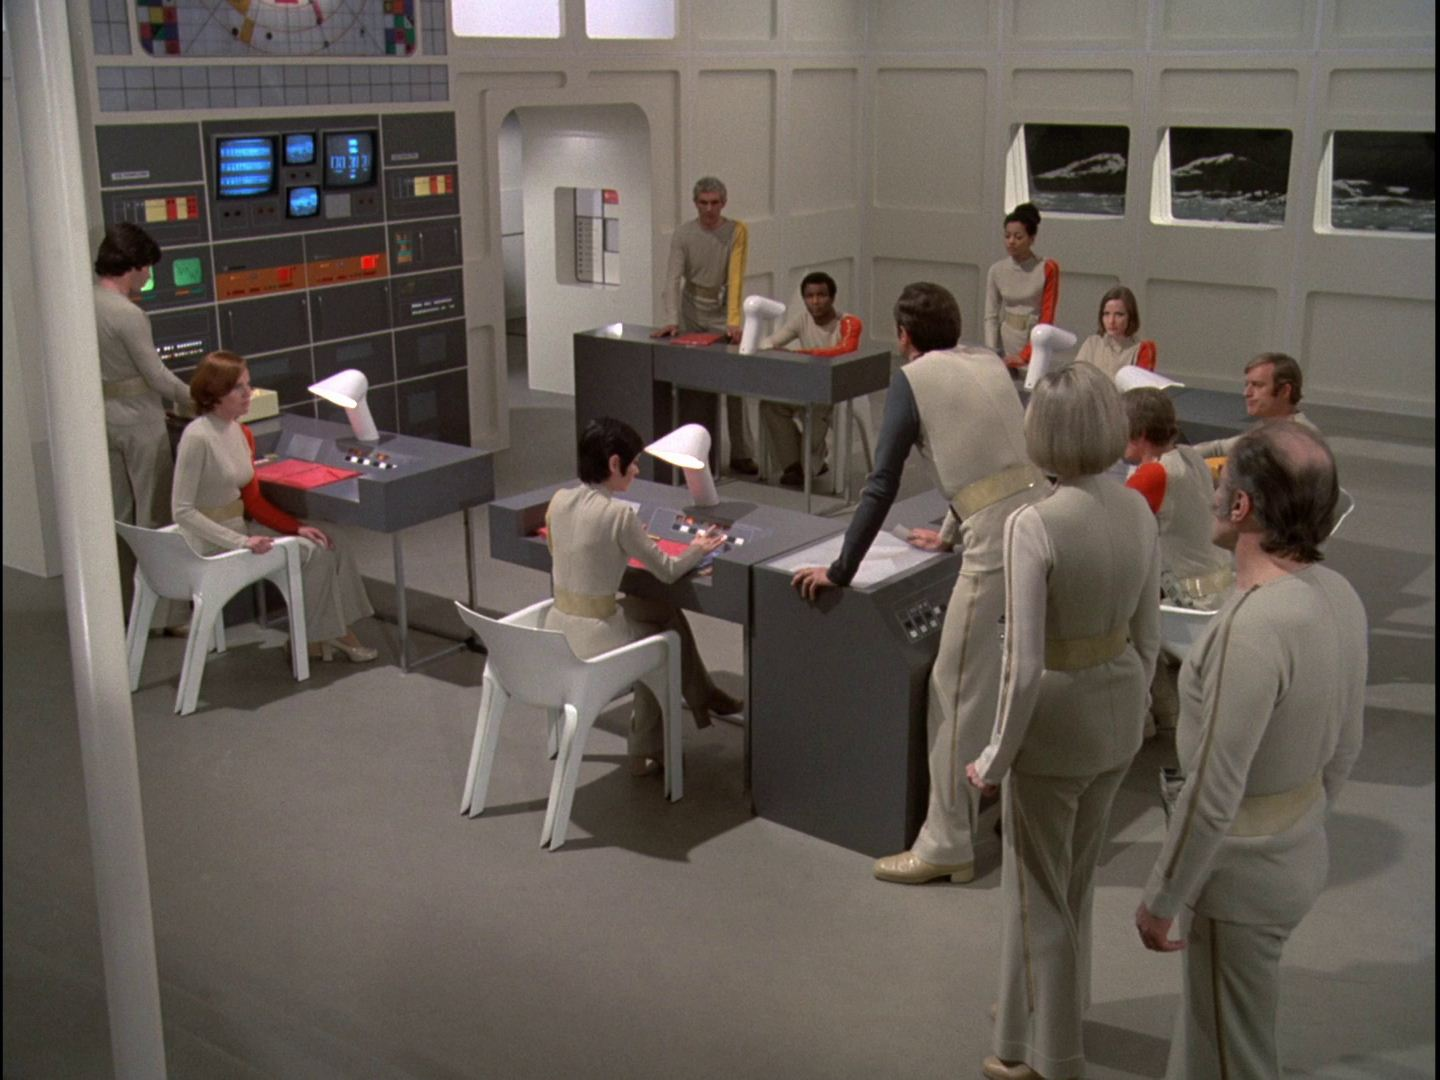 Space 1999 Film And Furniture